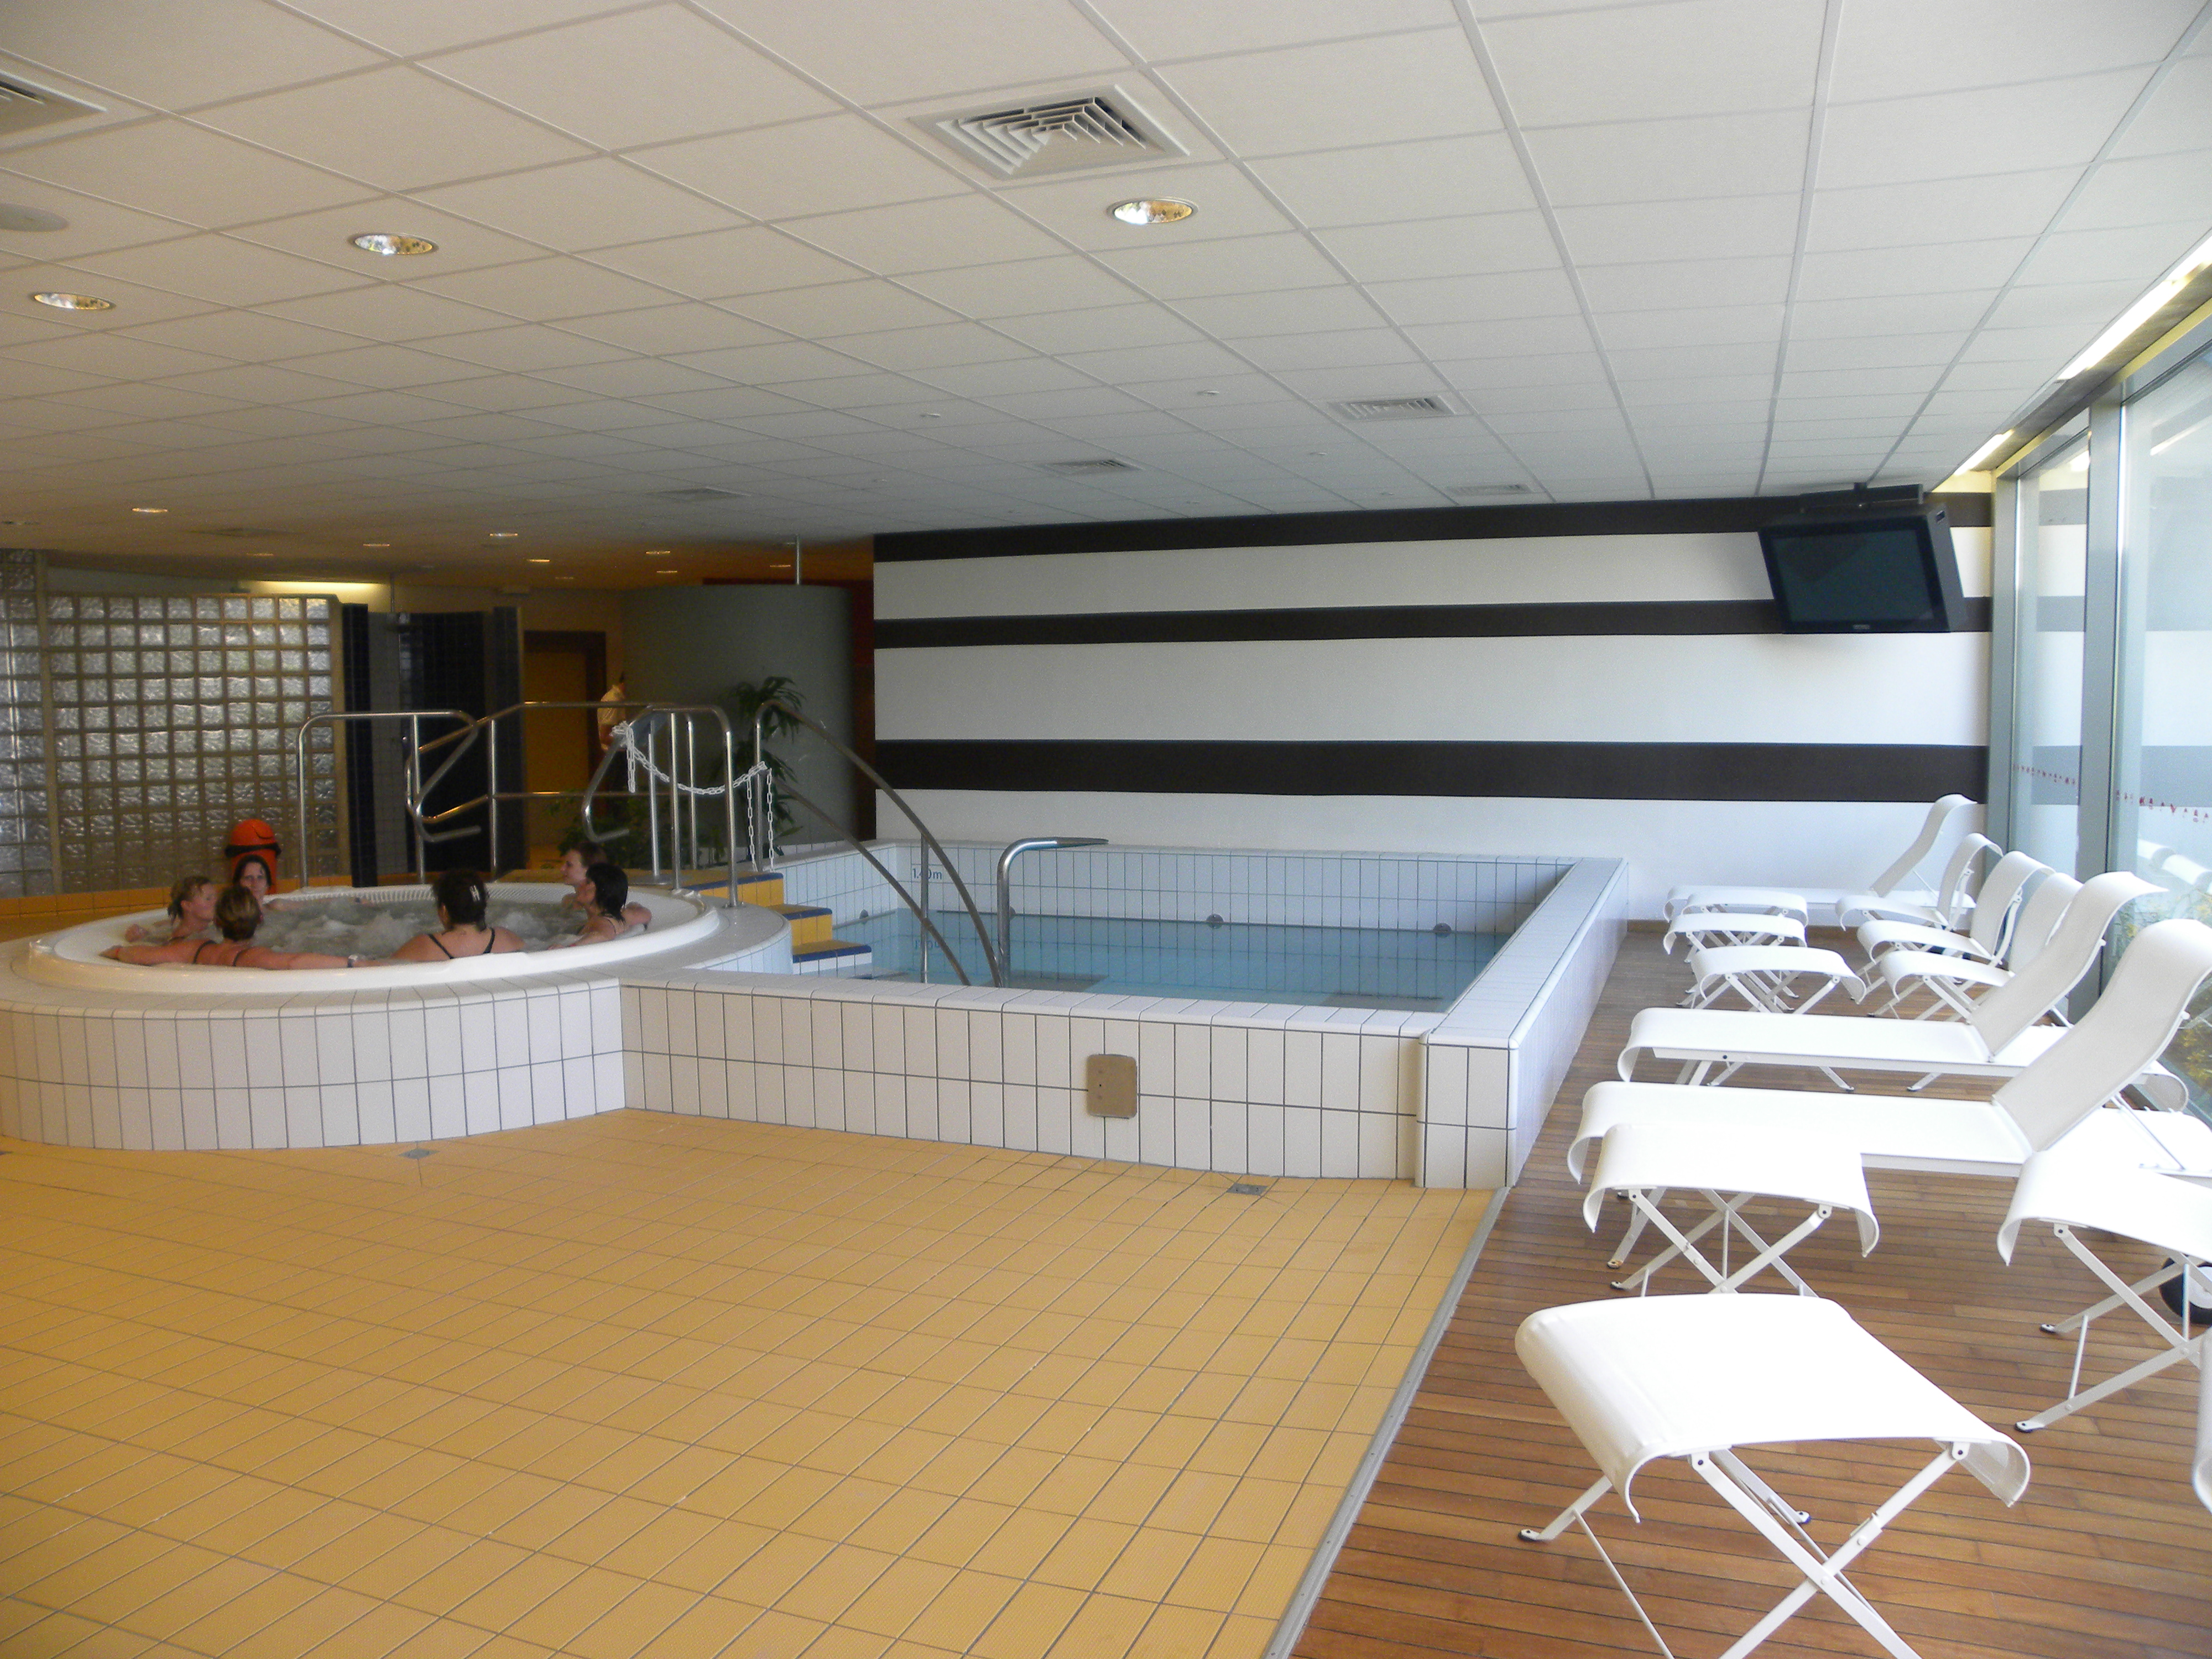 Wonderful Piscine Patinoire Iceo   Swimming, Skating, Course, Unsupervised  Activities, Introductory Course   Calais